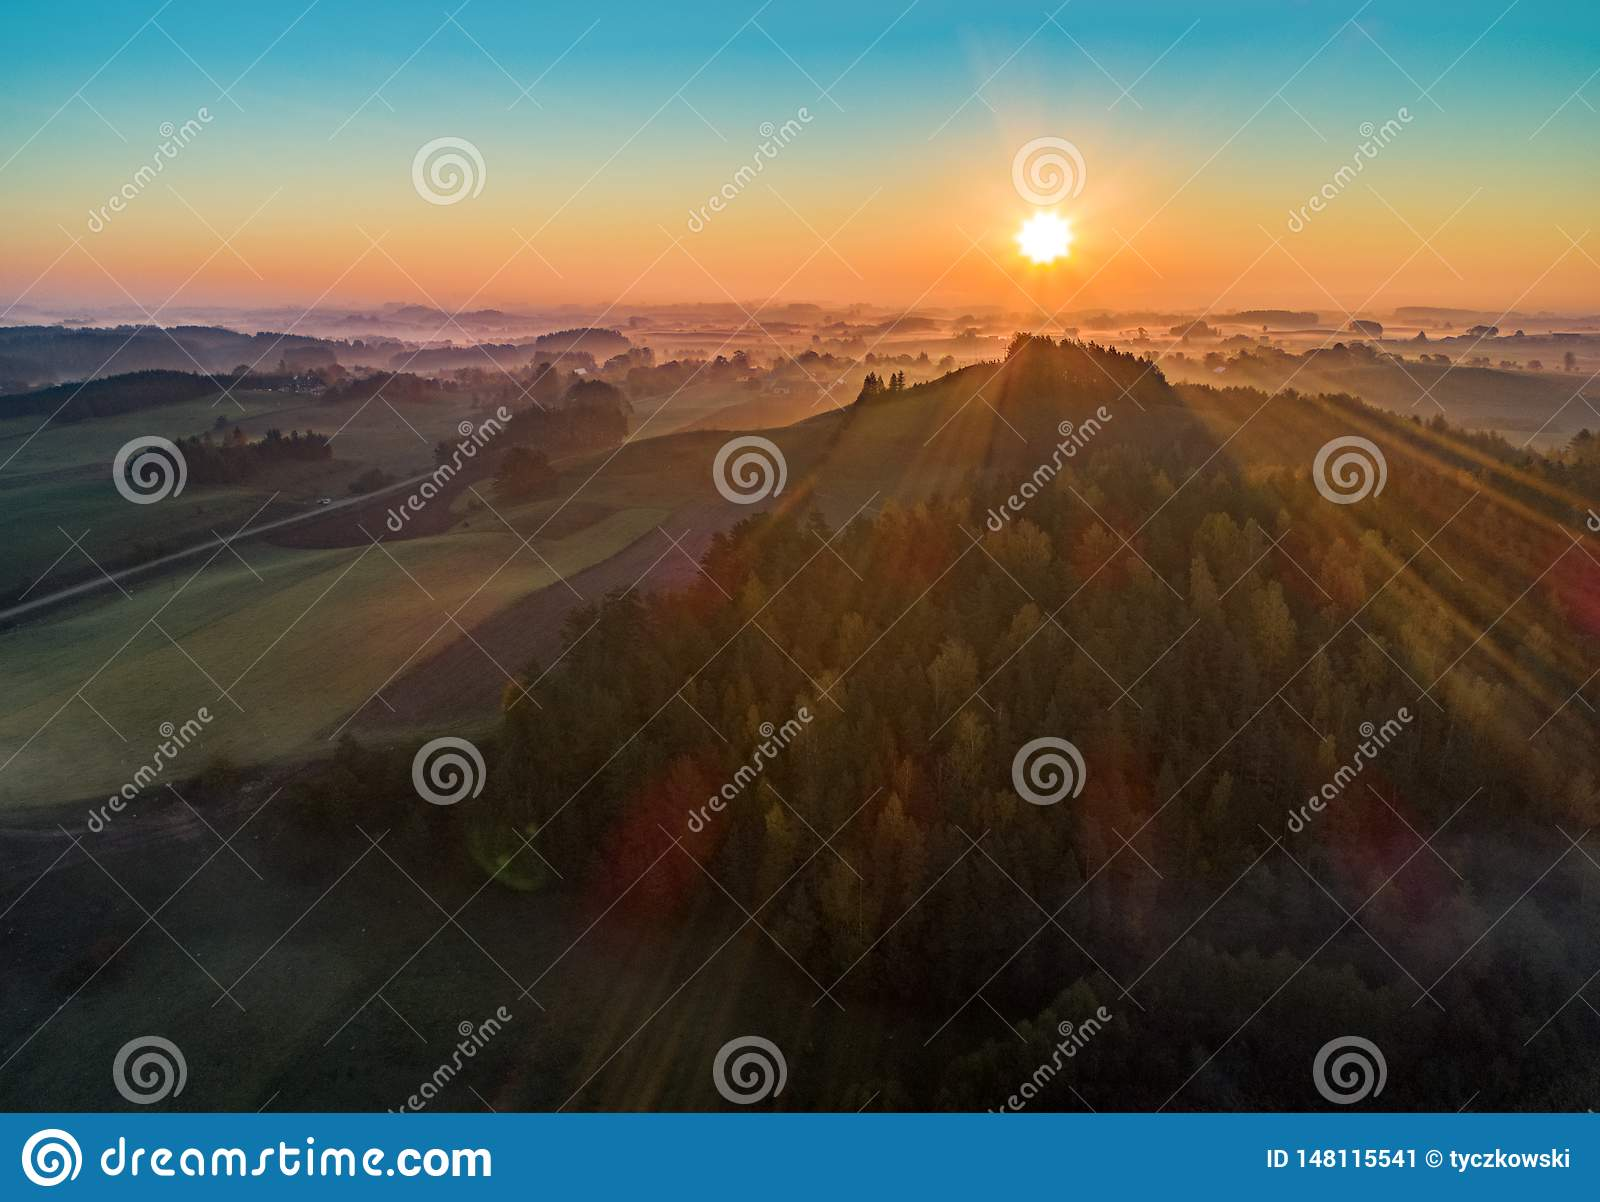 Sunrise over a mountain and forest - aerial photo